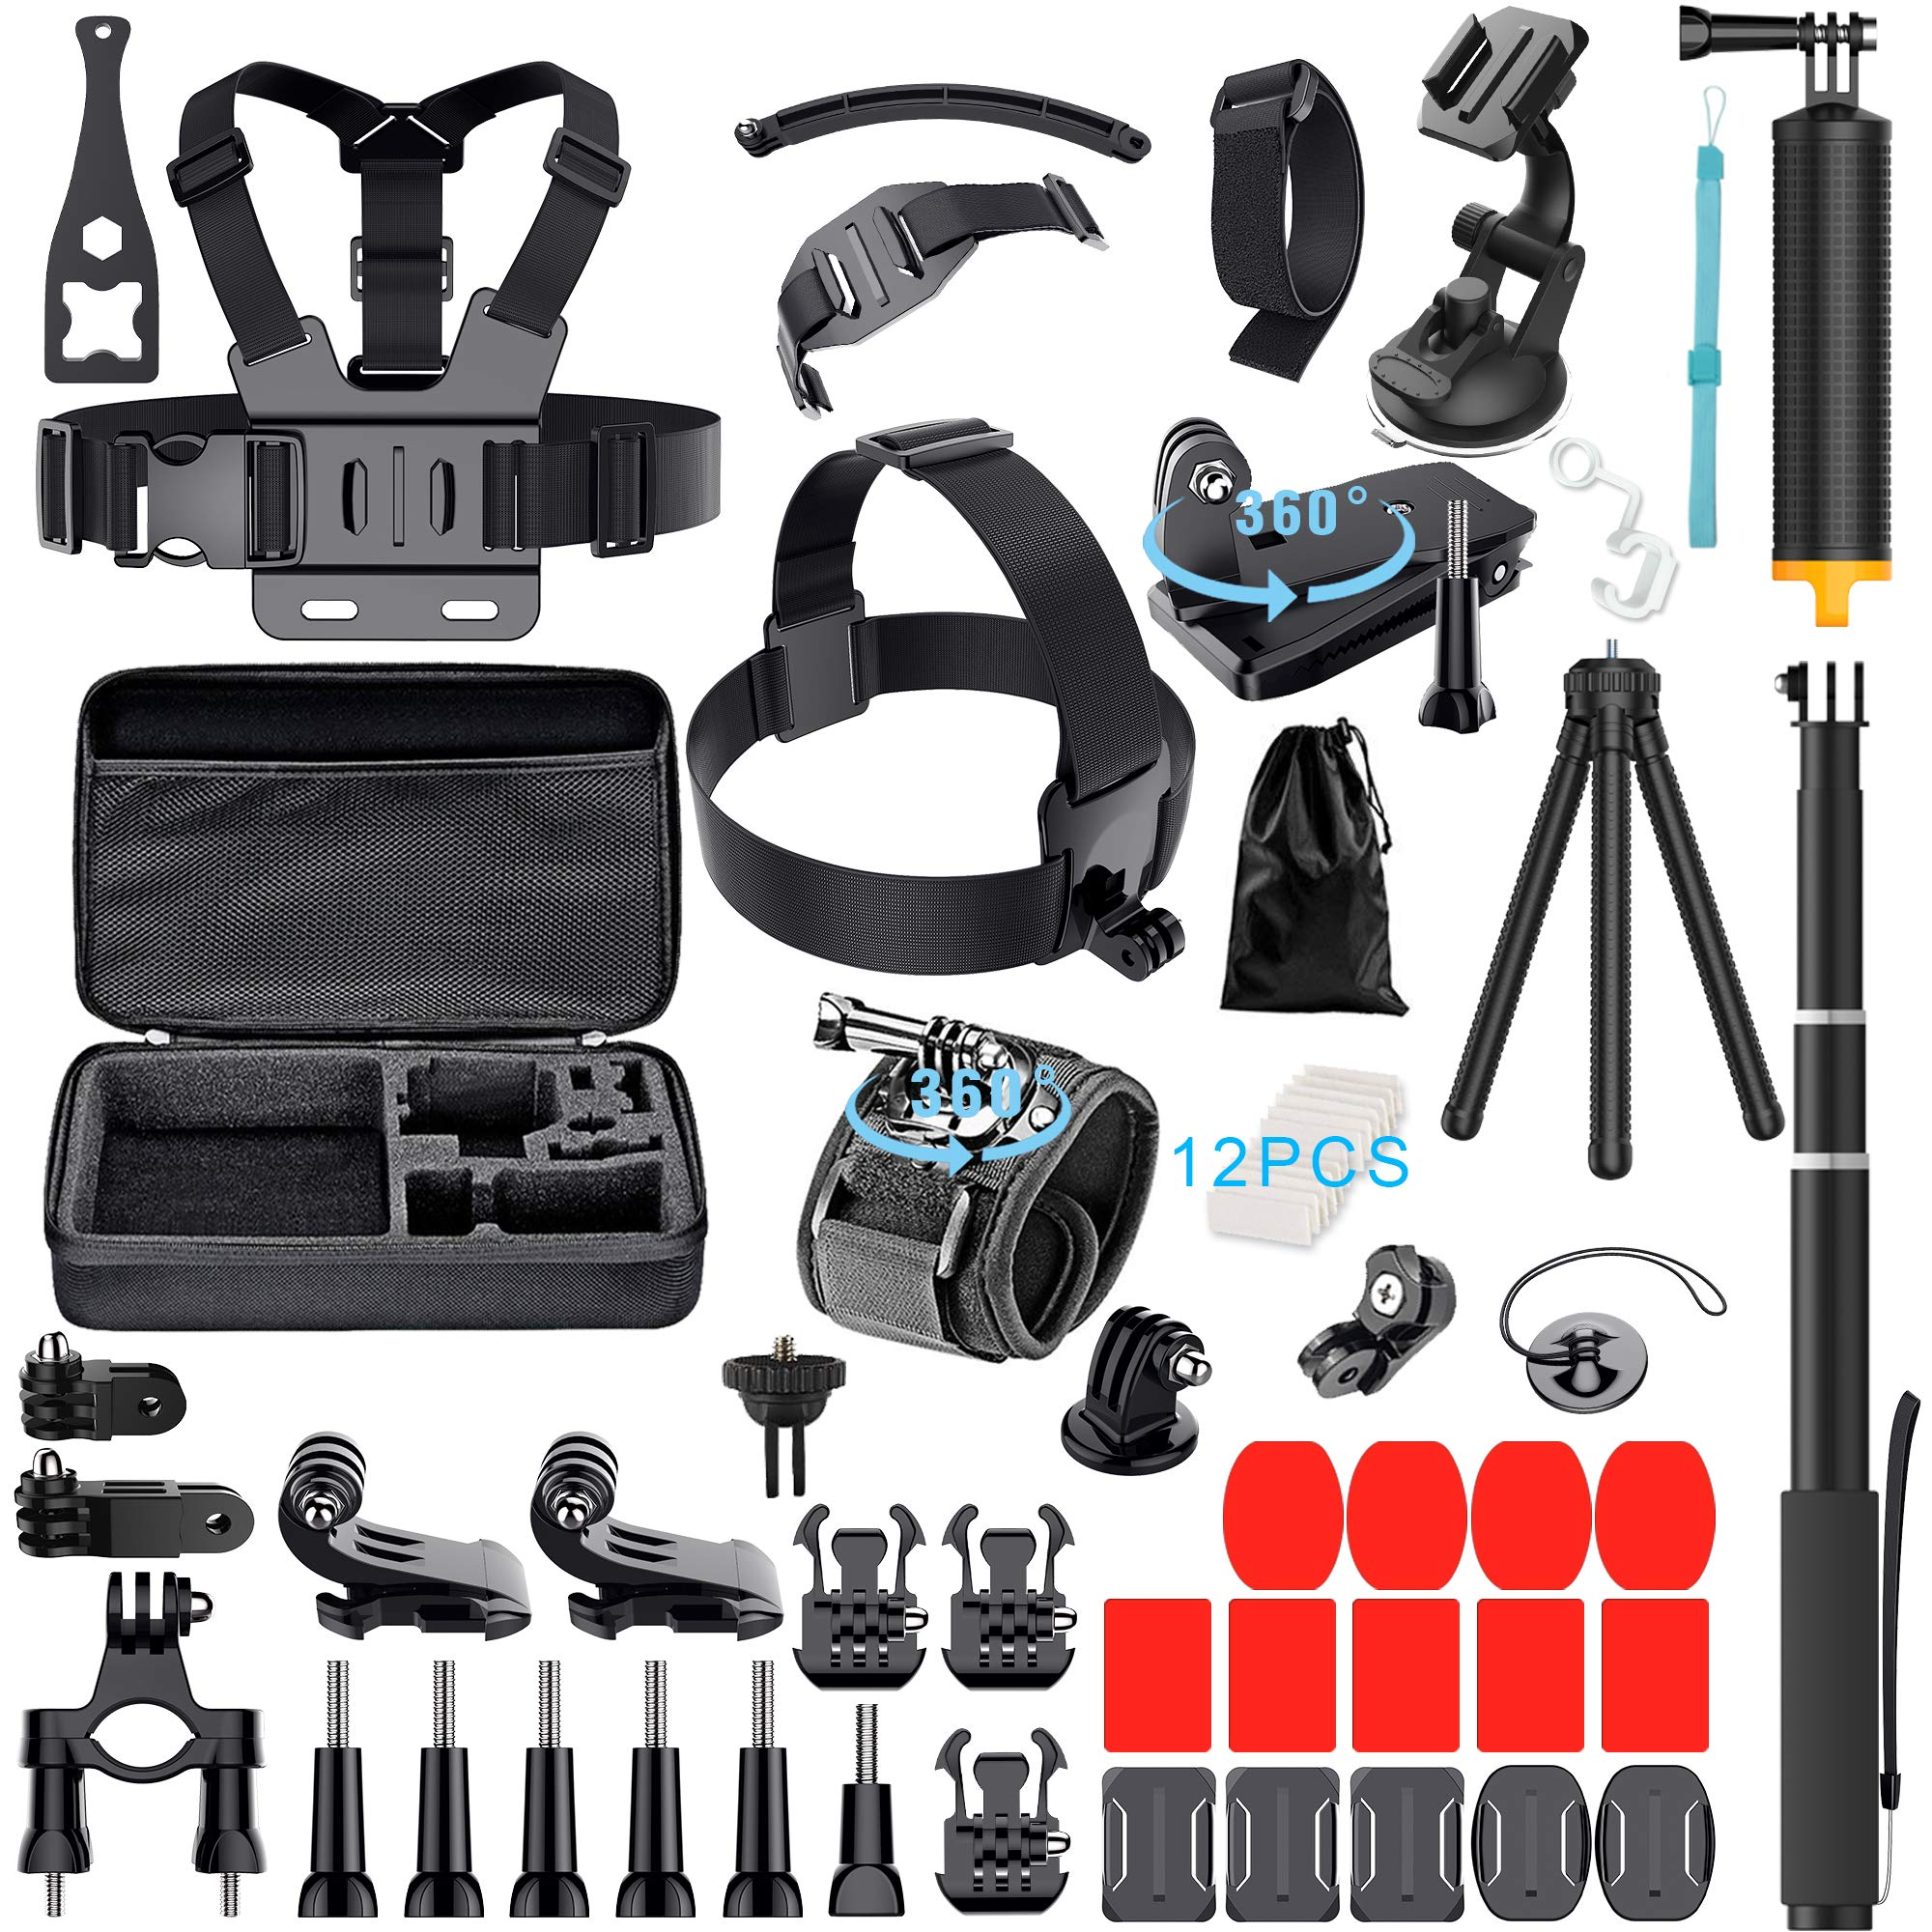 61-In-1 Action Camera Accessories Kit for GoPro Hero 7 6 5 4 3+ Hero Session 5 Black Accessory Bunble Set for AKASO APEMAN DBPOWER Xiaomi Yi SJ6000 Campark Rollei Lightdow Sony Sports DV Action Camera by Erligpowht